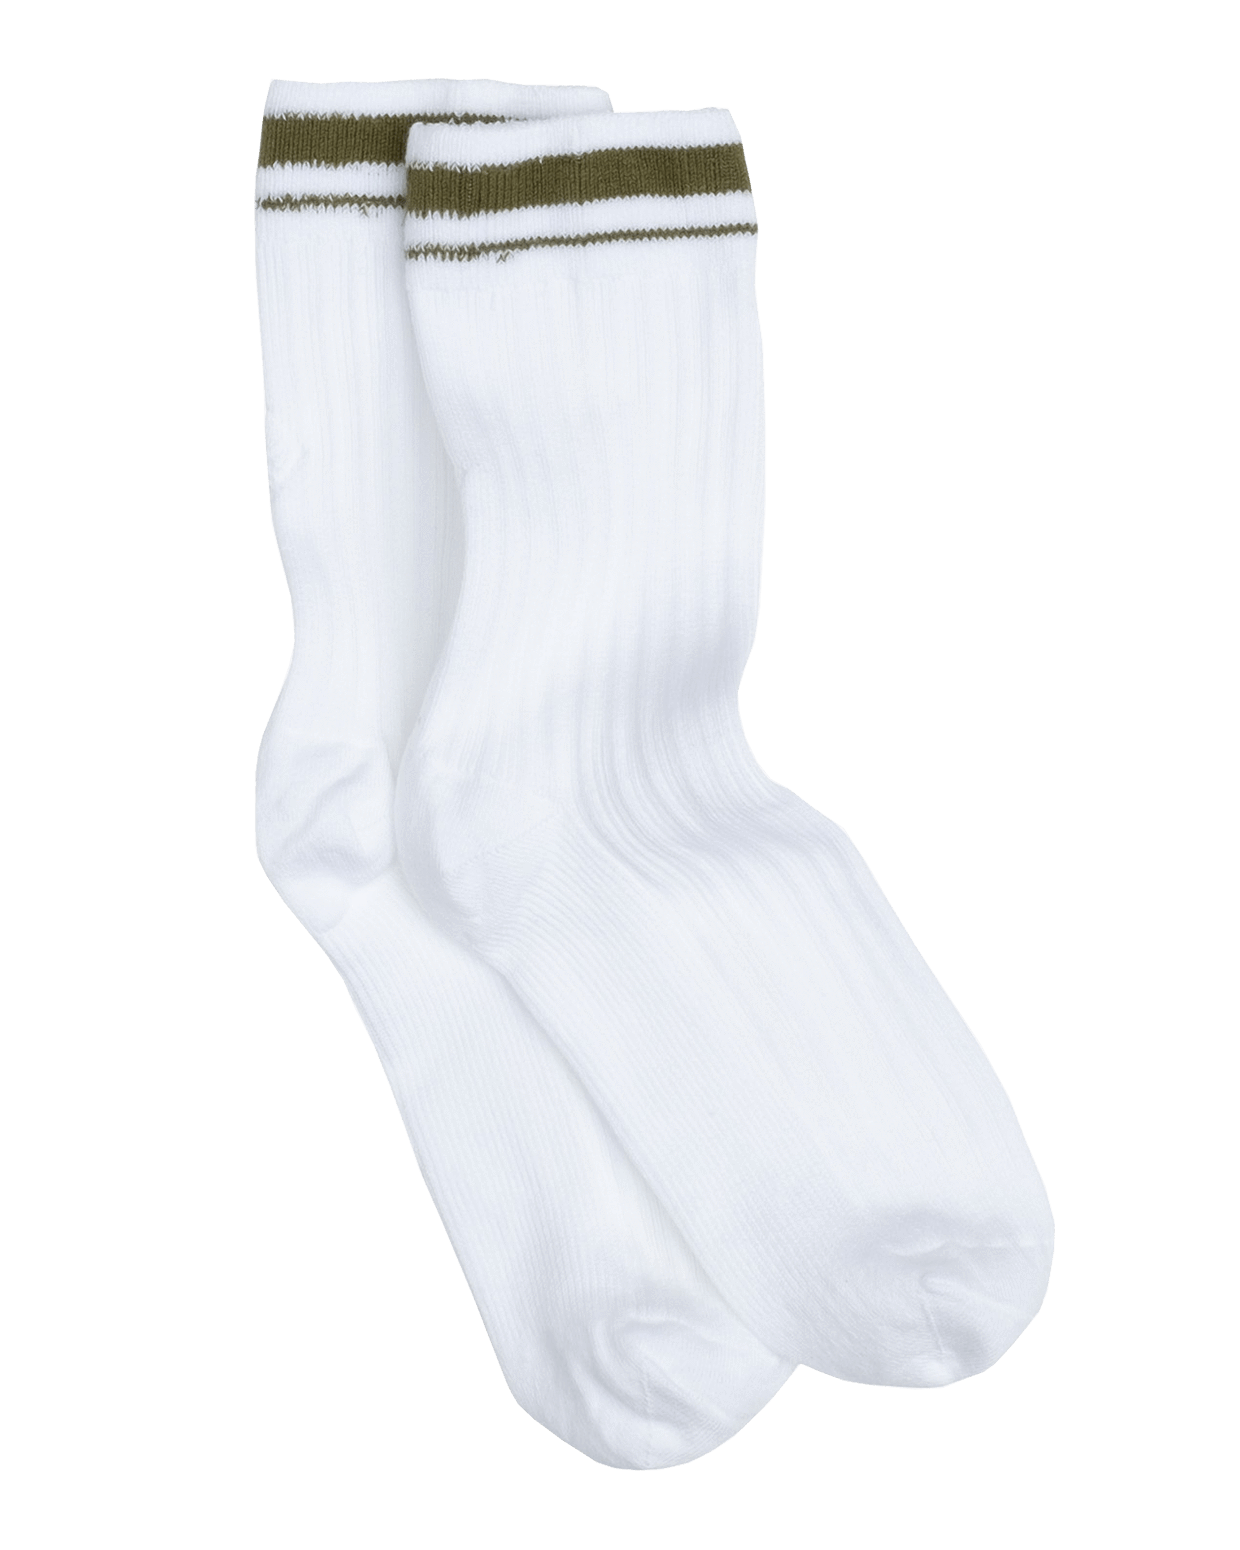 CORE SPORT SUPIMA COTTON WHITE SOCKS - OLIVE STRIPE